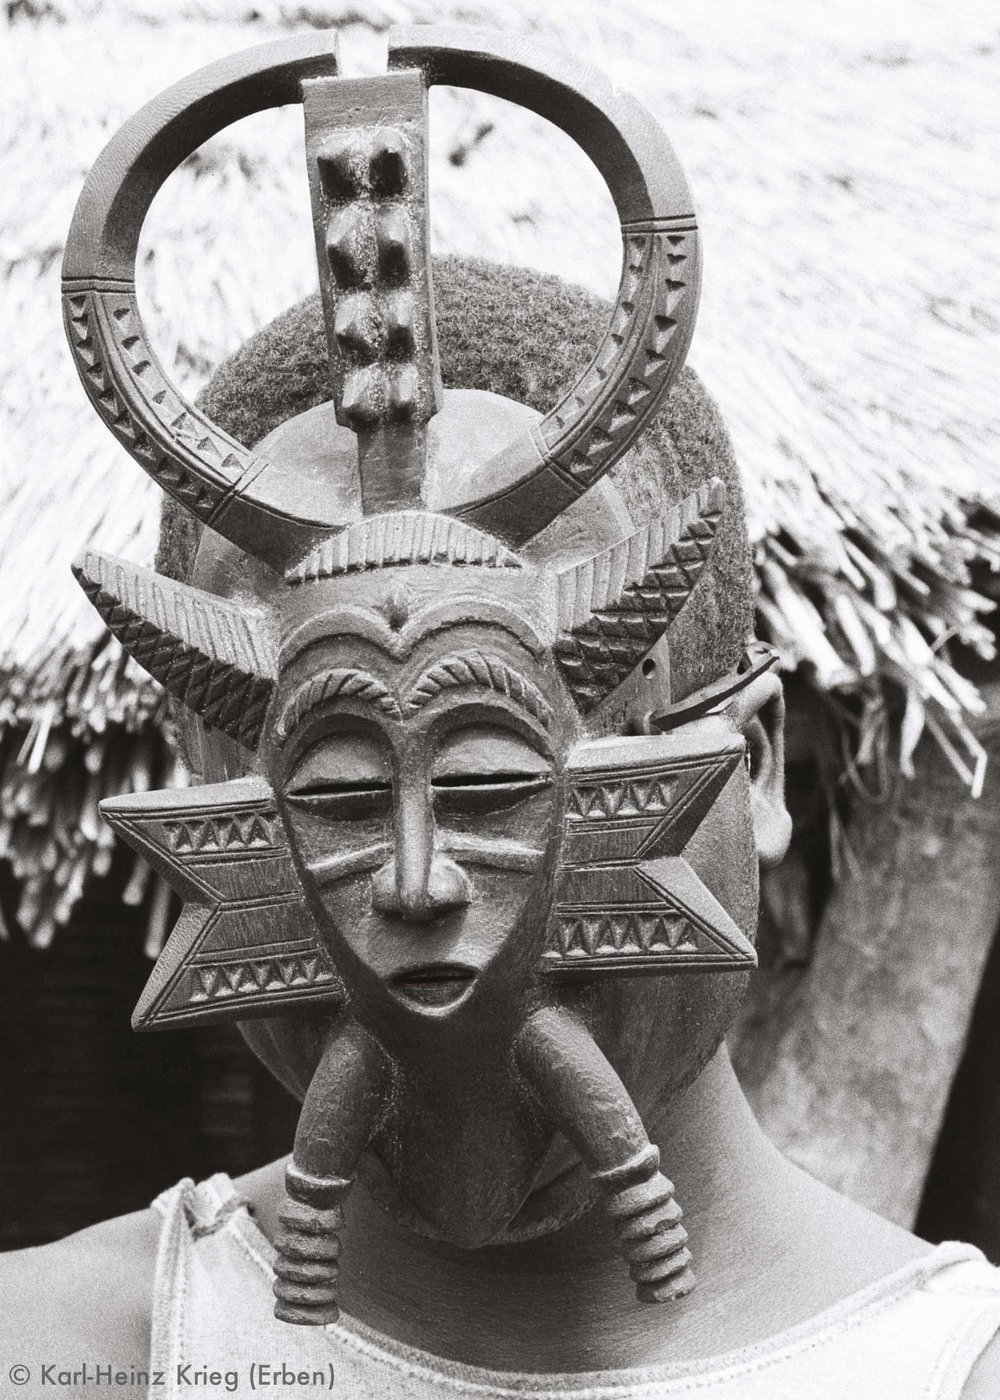 Kodaliyèhè mask carved by Sécondjéwin Dagnogo in 1977 as an replacement for an old mask for the Fono group in Poundiou.Poundiou (Region of Boundiali, Côte d'Ivoire),1977. Photo: Karl-Heinz Krieg